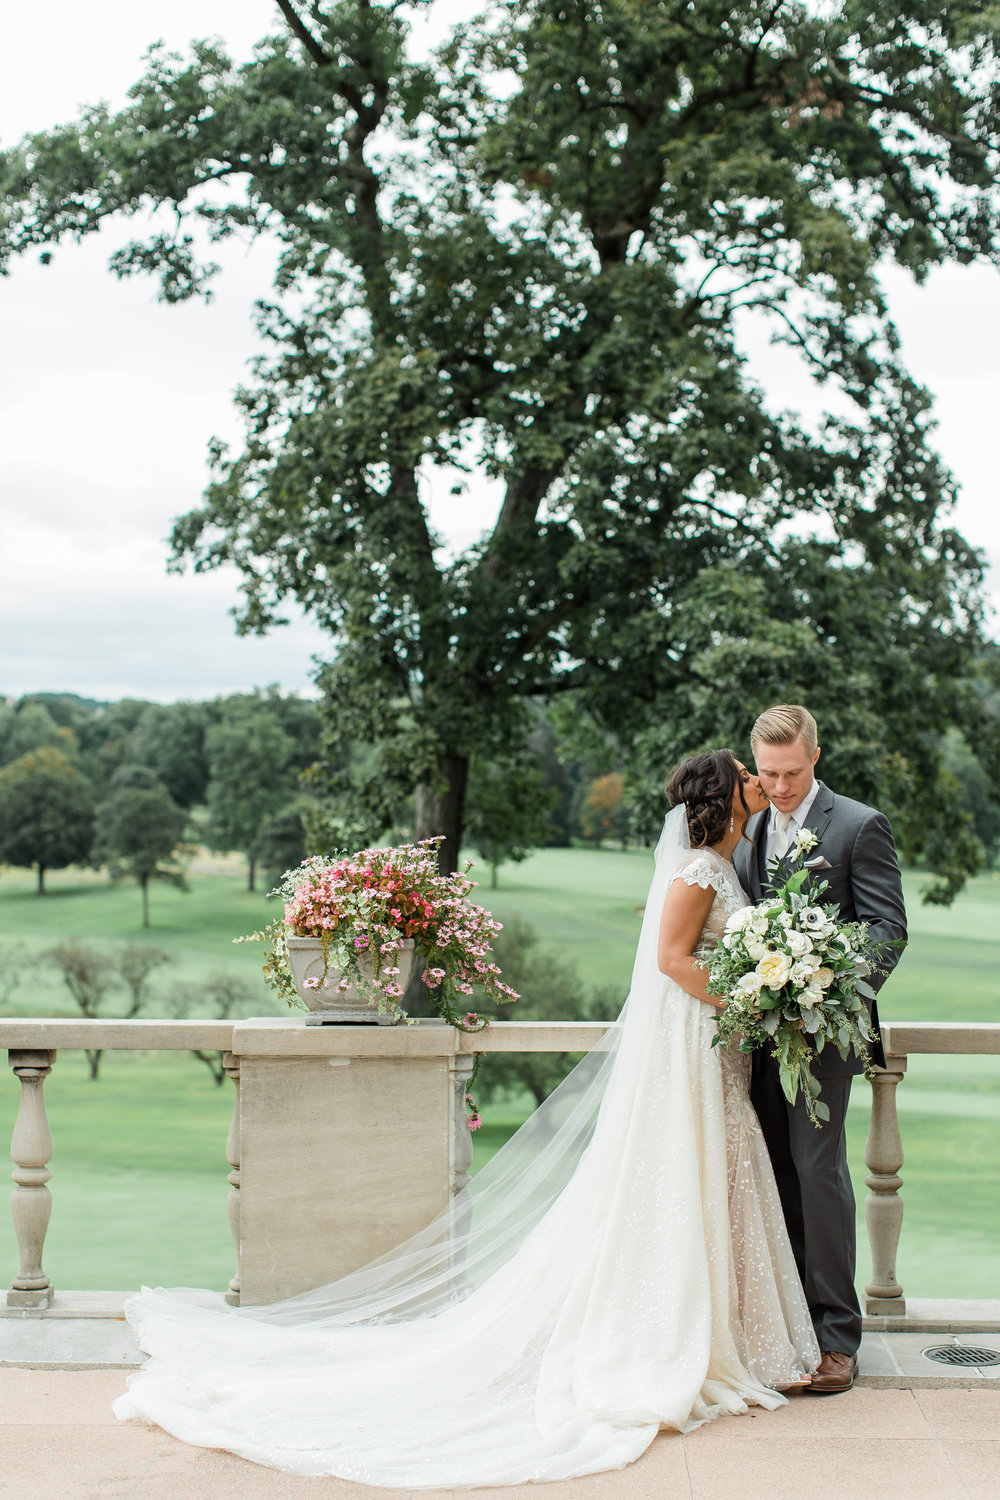 pittsburgh-wedding-photographer-classic-greenery-foxchapelgolfclub0023.jpg